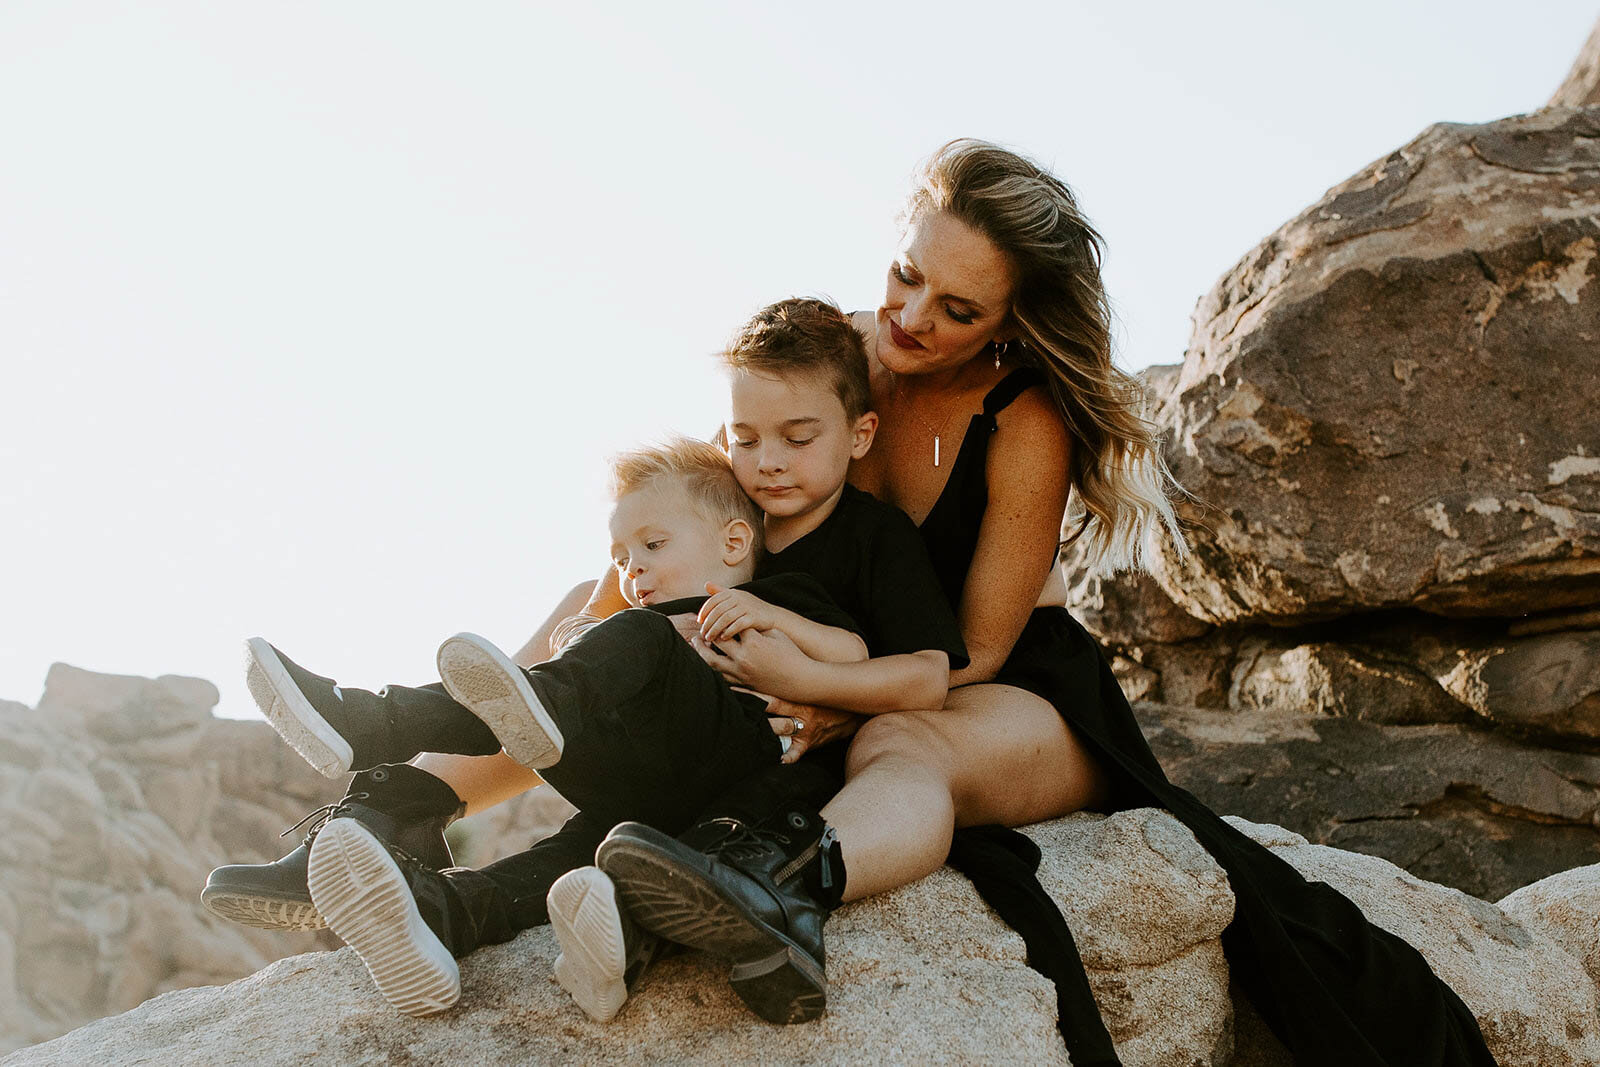 joshua-tree-family-photos-2019-3234.jpg